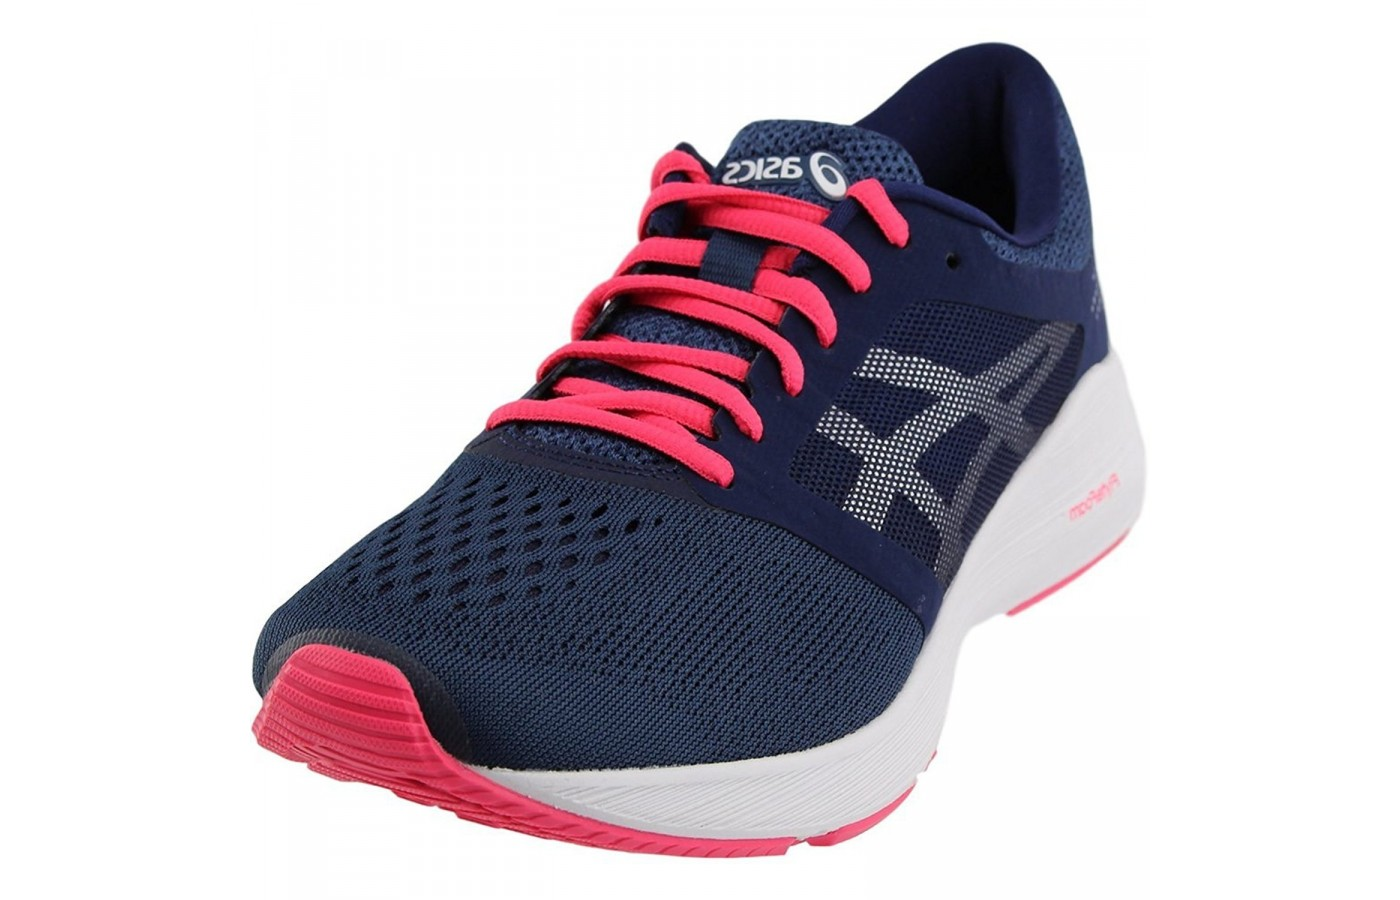 ASICS RoadHawk FF side